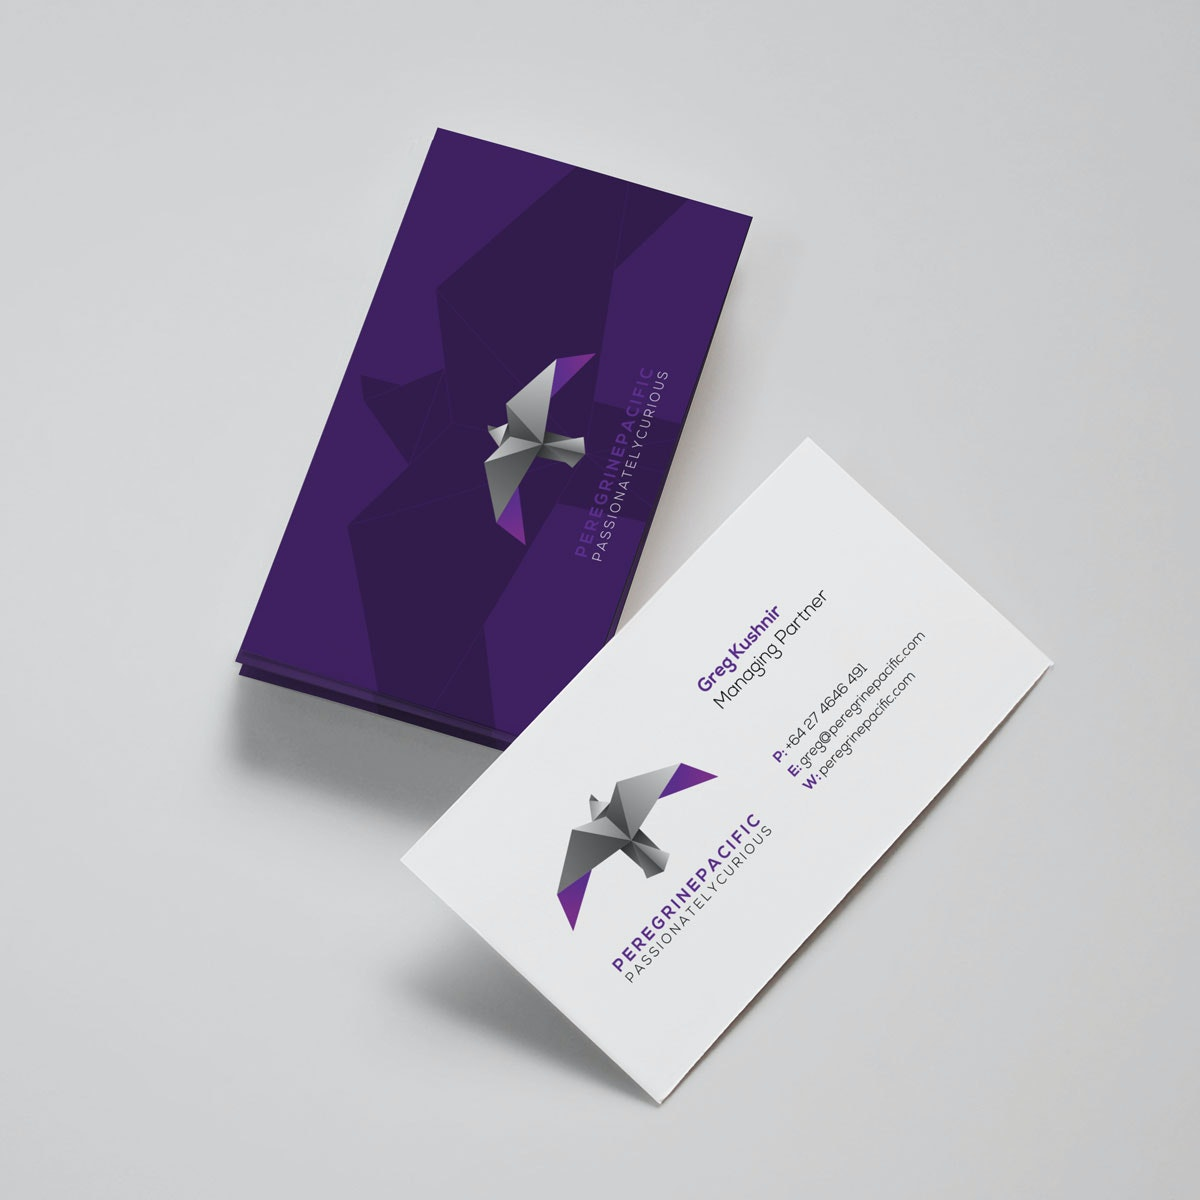 Brilliant, deep purple card and logo